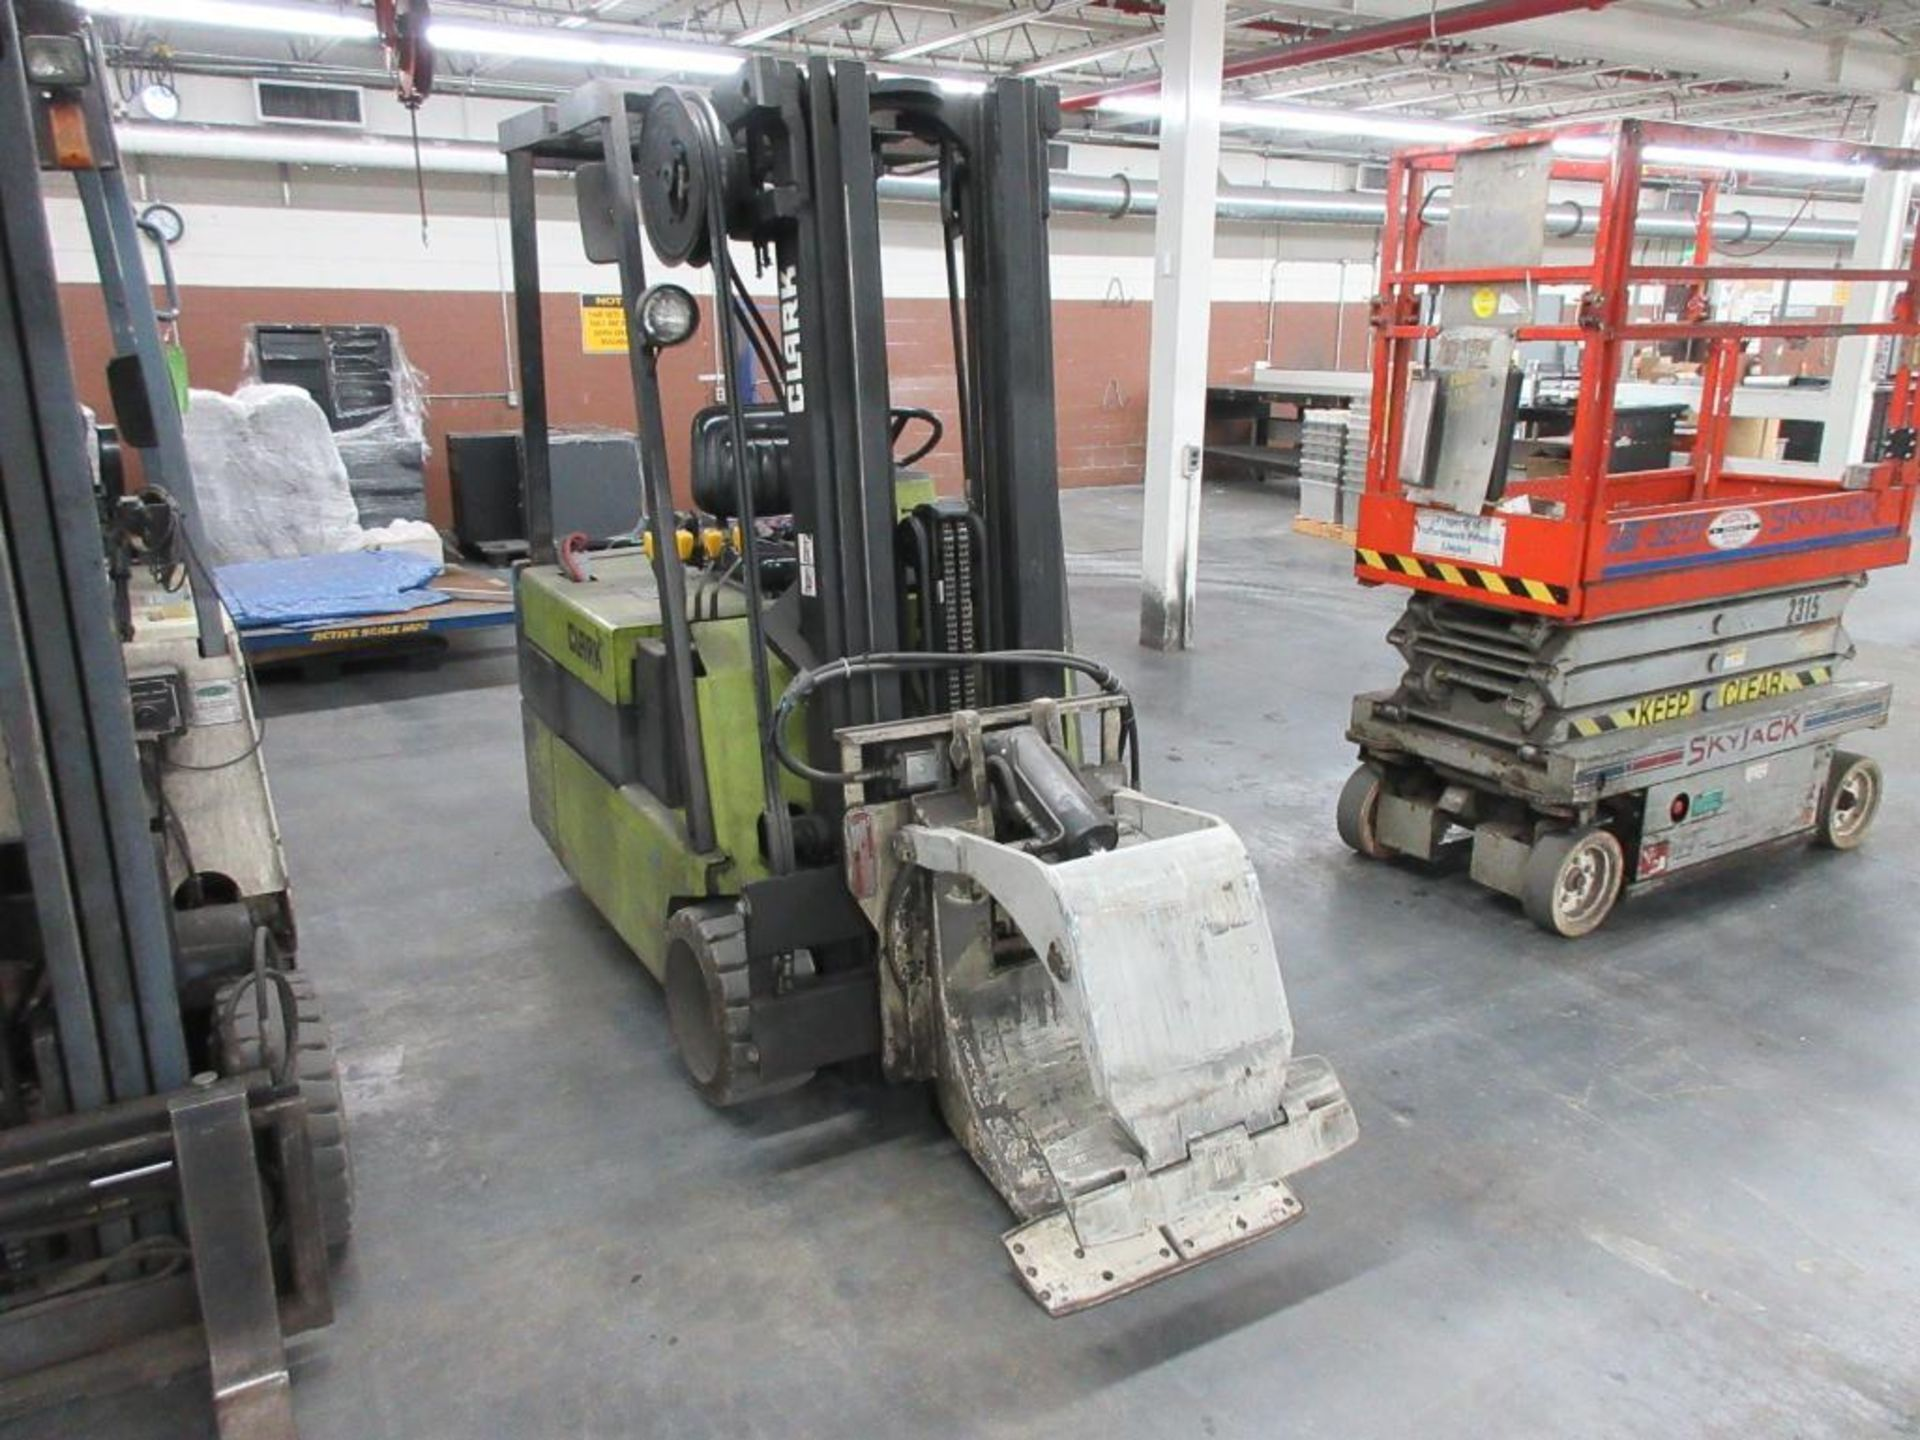 """Clark 4,500 lb capacity, 3 wheel electric clamp forklift, model TM25, 3 stage mast, 186"""" lift height - Image 2 of 10"""